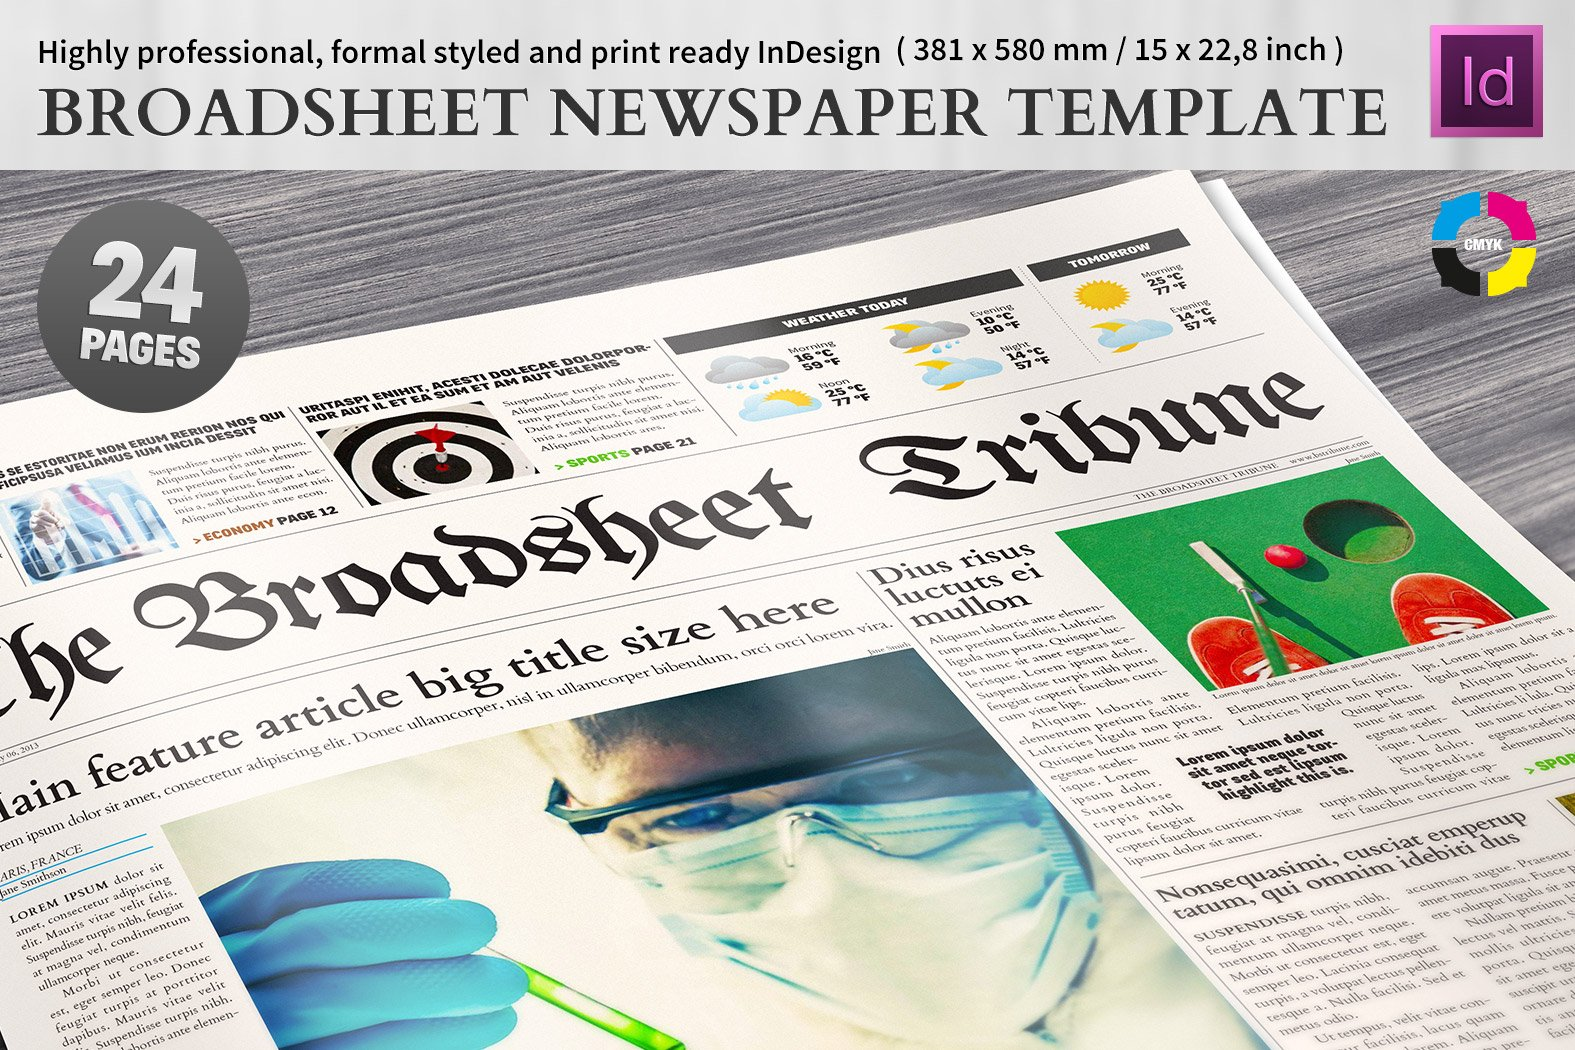 Broadsheet Newspaper Template ~ Magazine Templates ~ Creative Market